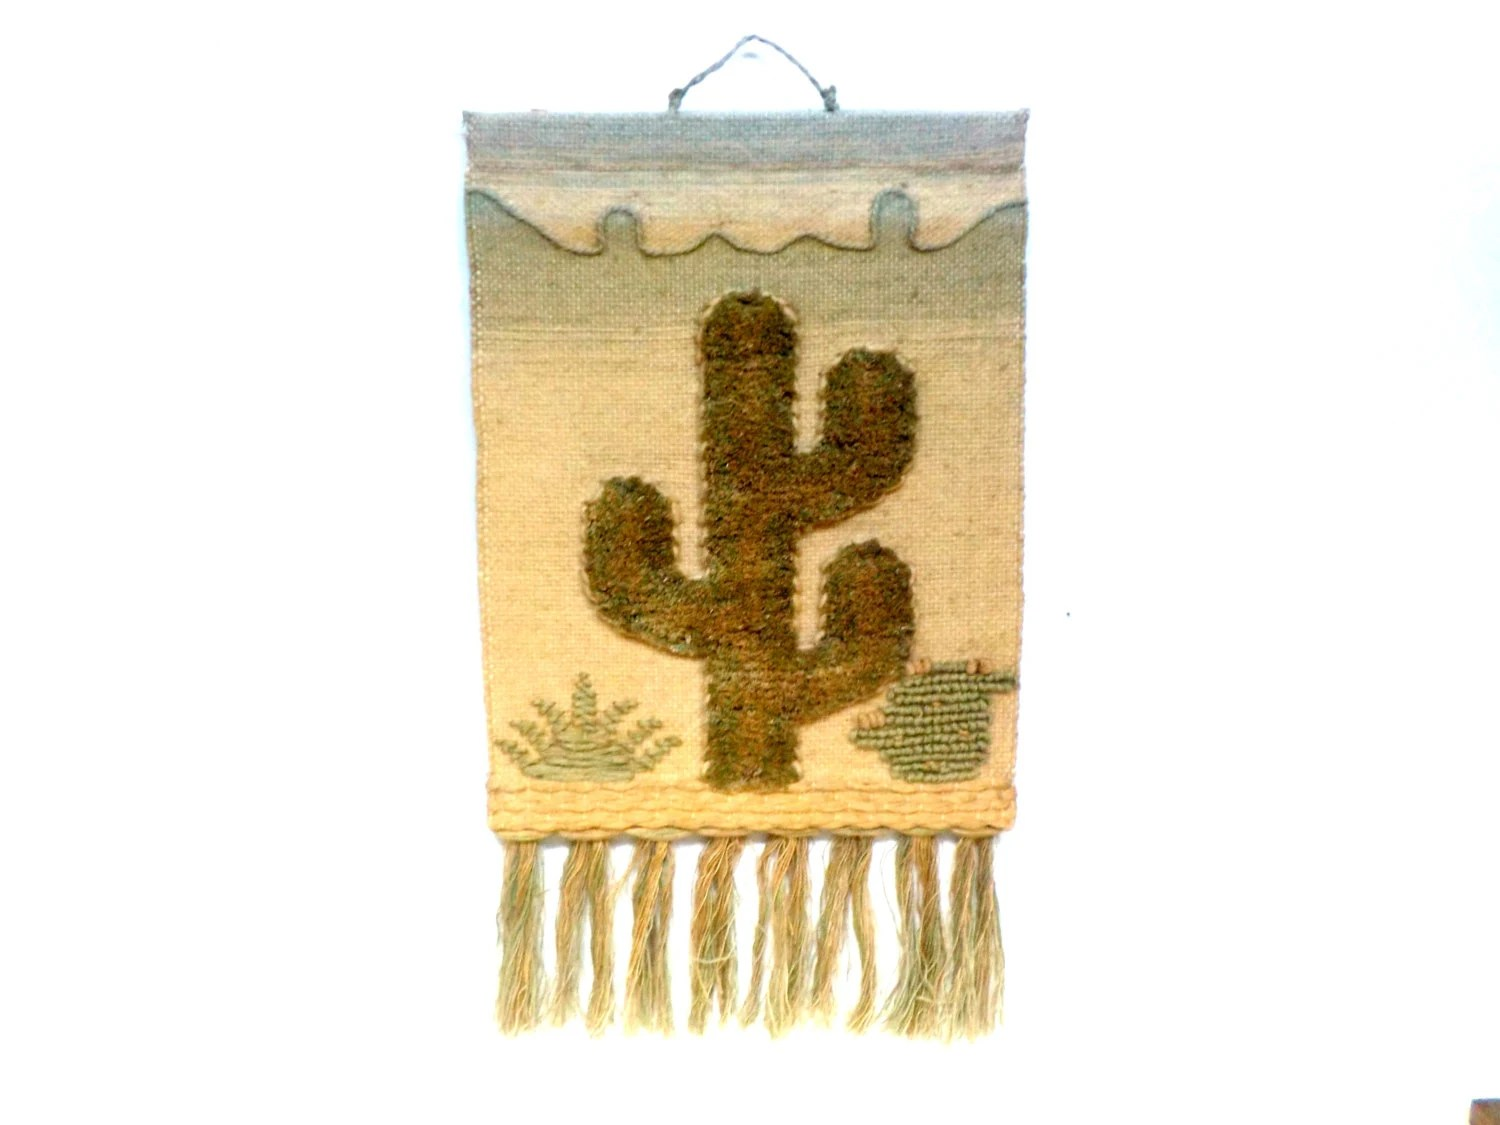 Hanging Southwestern Wall Decor Hand Woven Cactus Yarn And